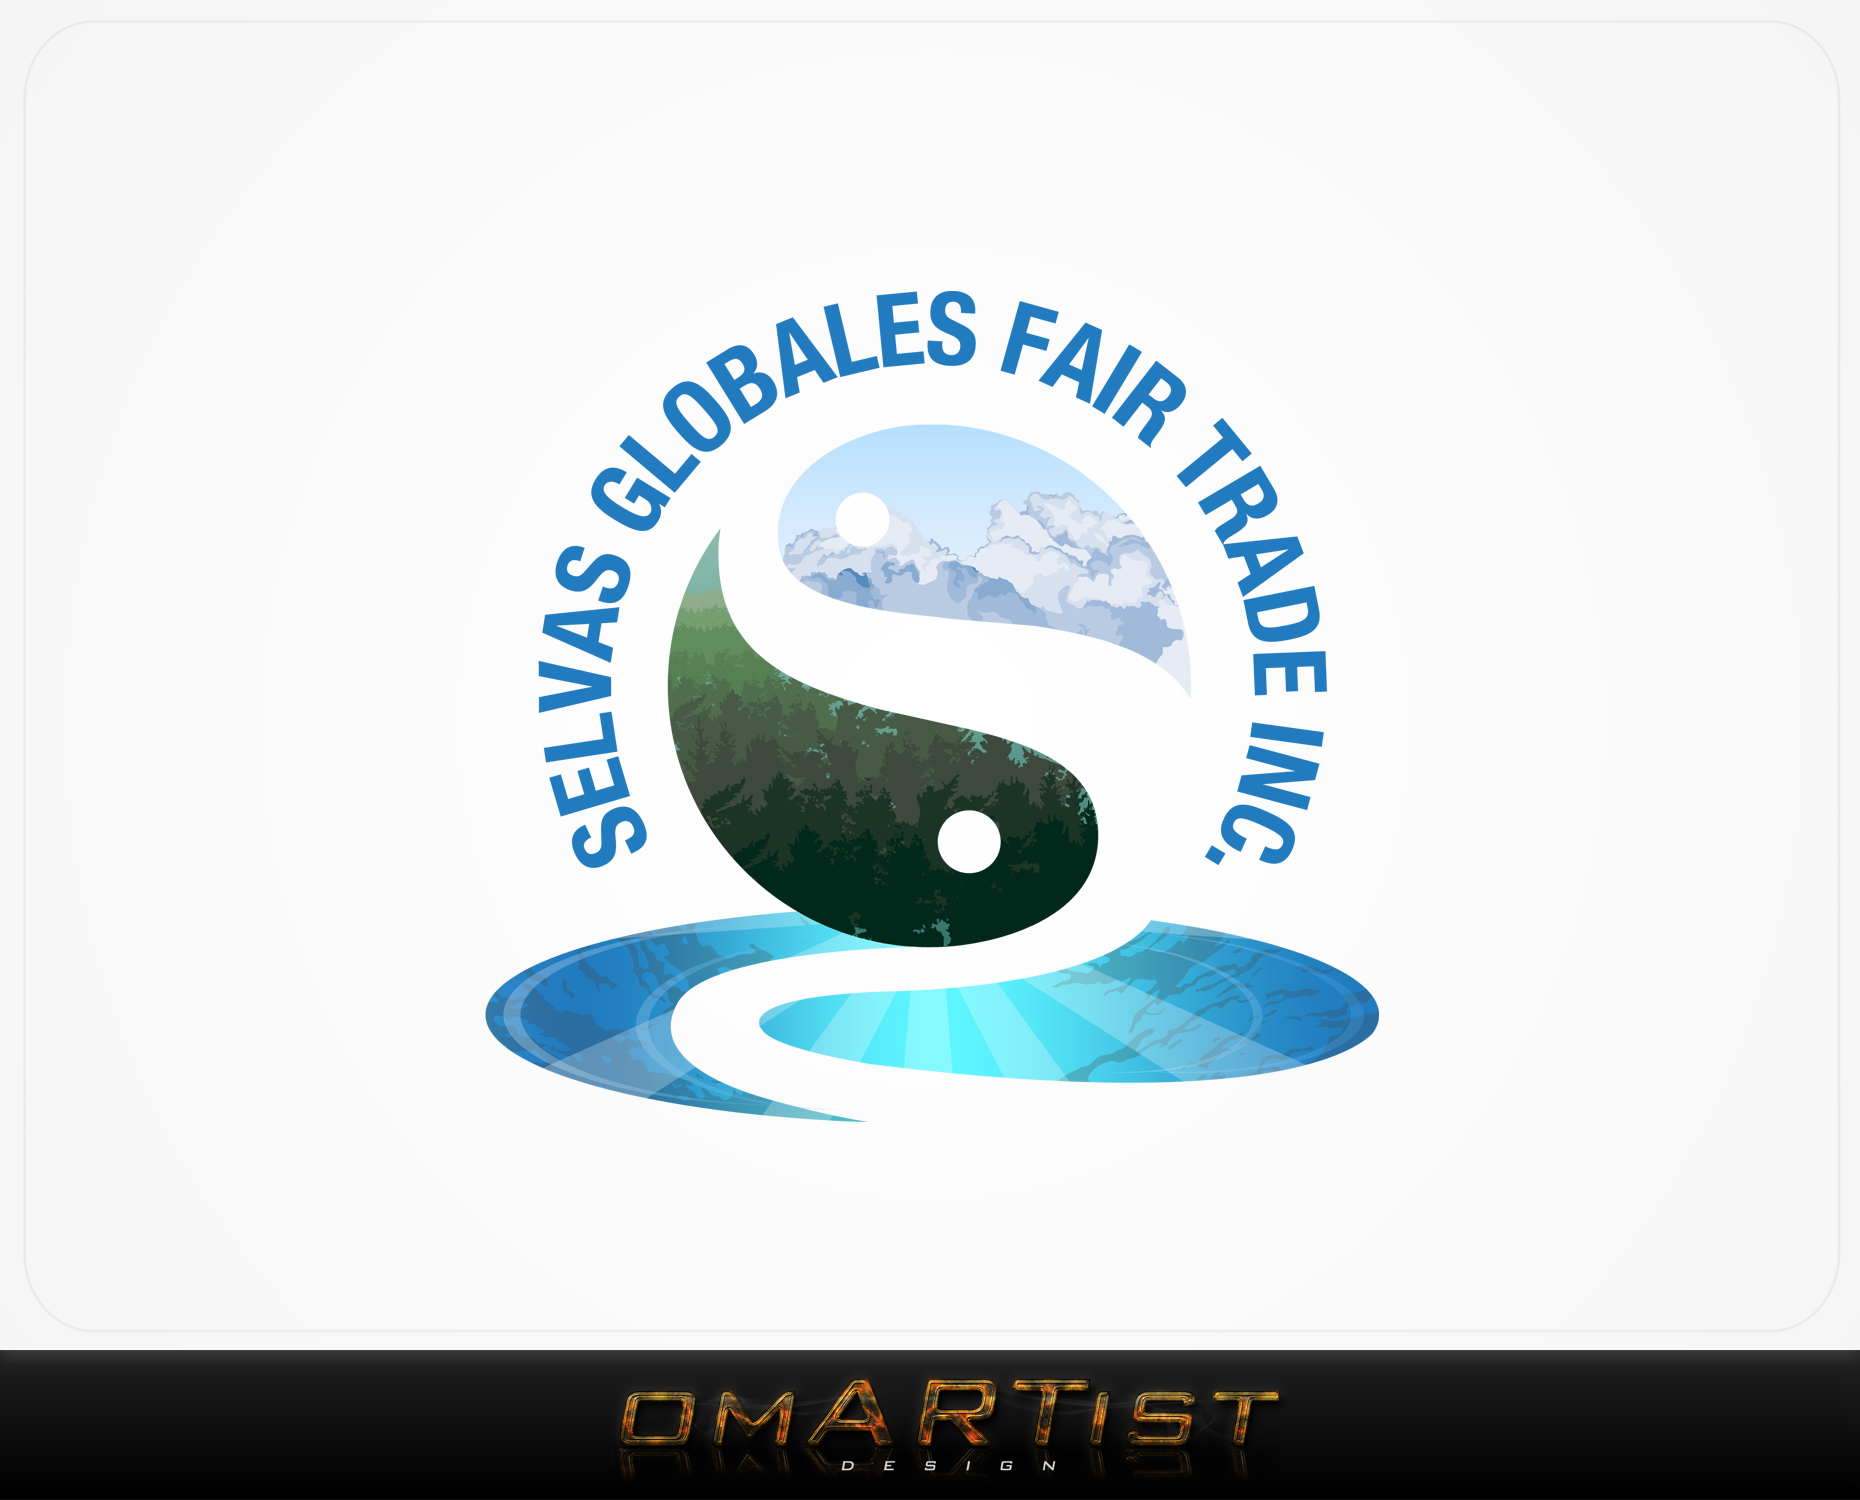 Logo Design by omARTist - Entry No. 134 in the Logo Design Contest Captivating Logo Design for Selvas Globales Fair Trade Inc..